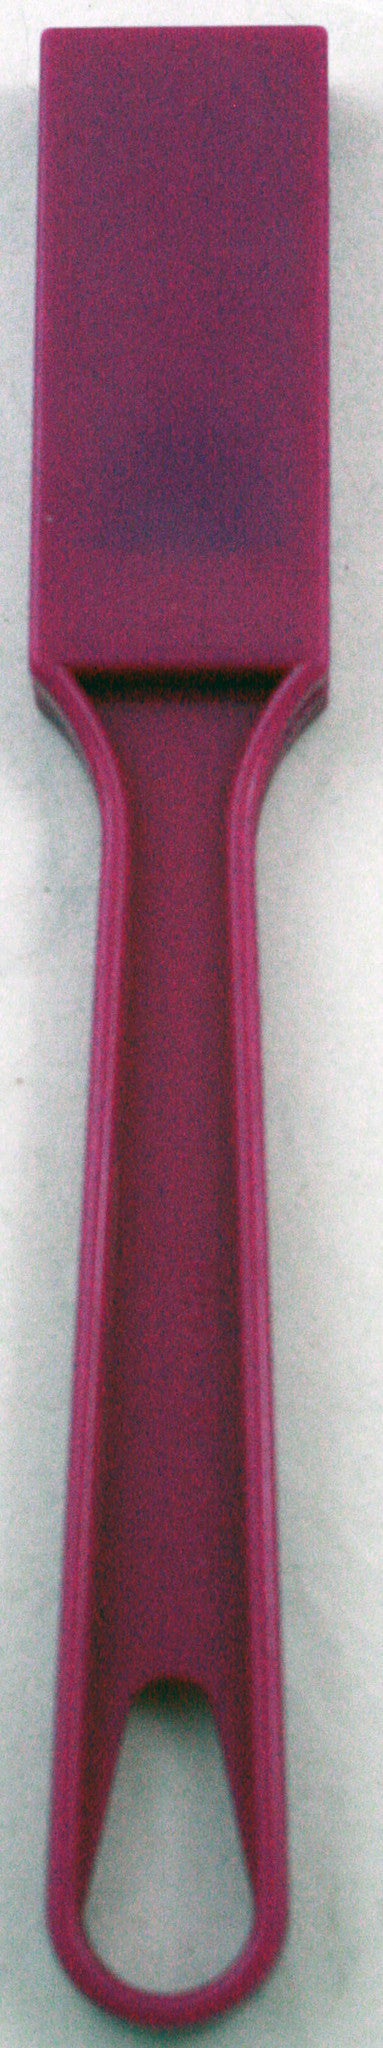 Neon Purple 8 Inch Magnetic Wand Toy - Off The Wall Toys and Gifts